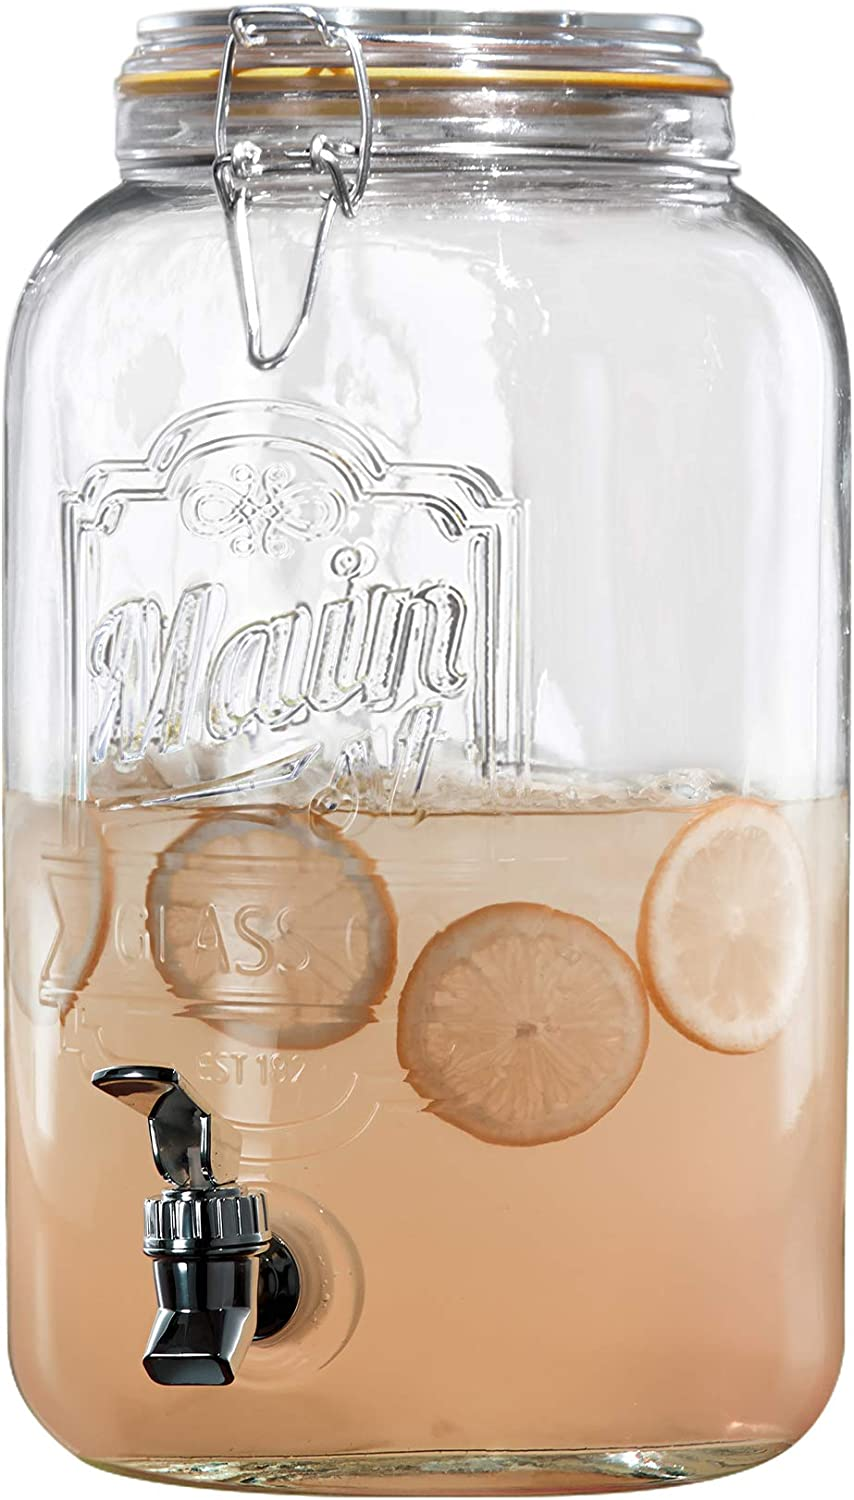 Style Setter 210256-CB Beverage Cold Drink Dispenser w/ 1.5-Gallon Capacity Glass Jug, Leak-Proof Acrylic Spigot for Parties, Weddings, & More, 1.5 Gallon, Clamp Lid